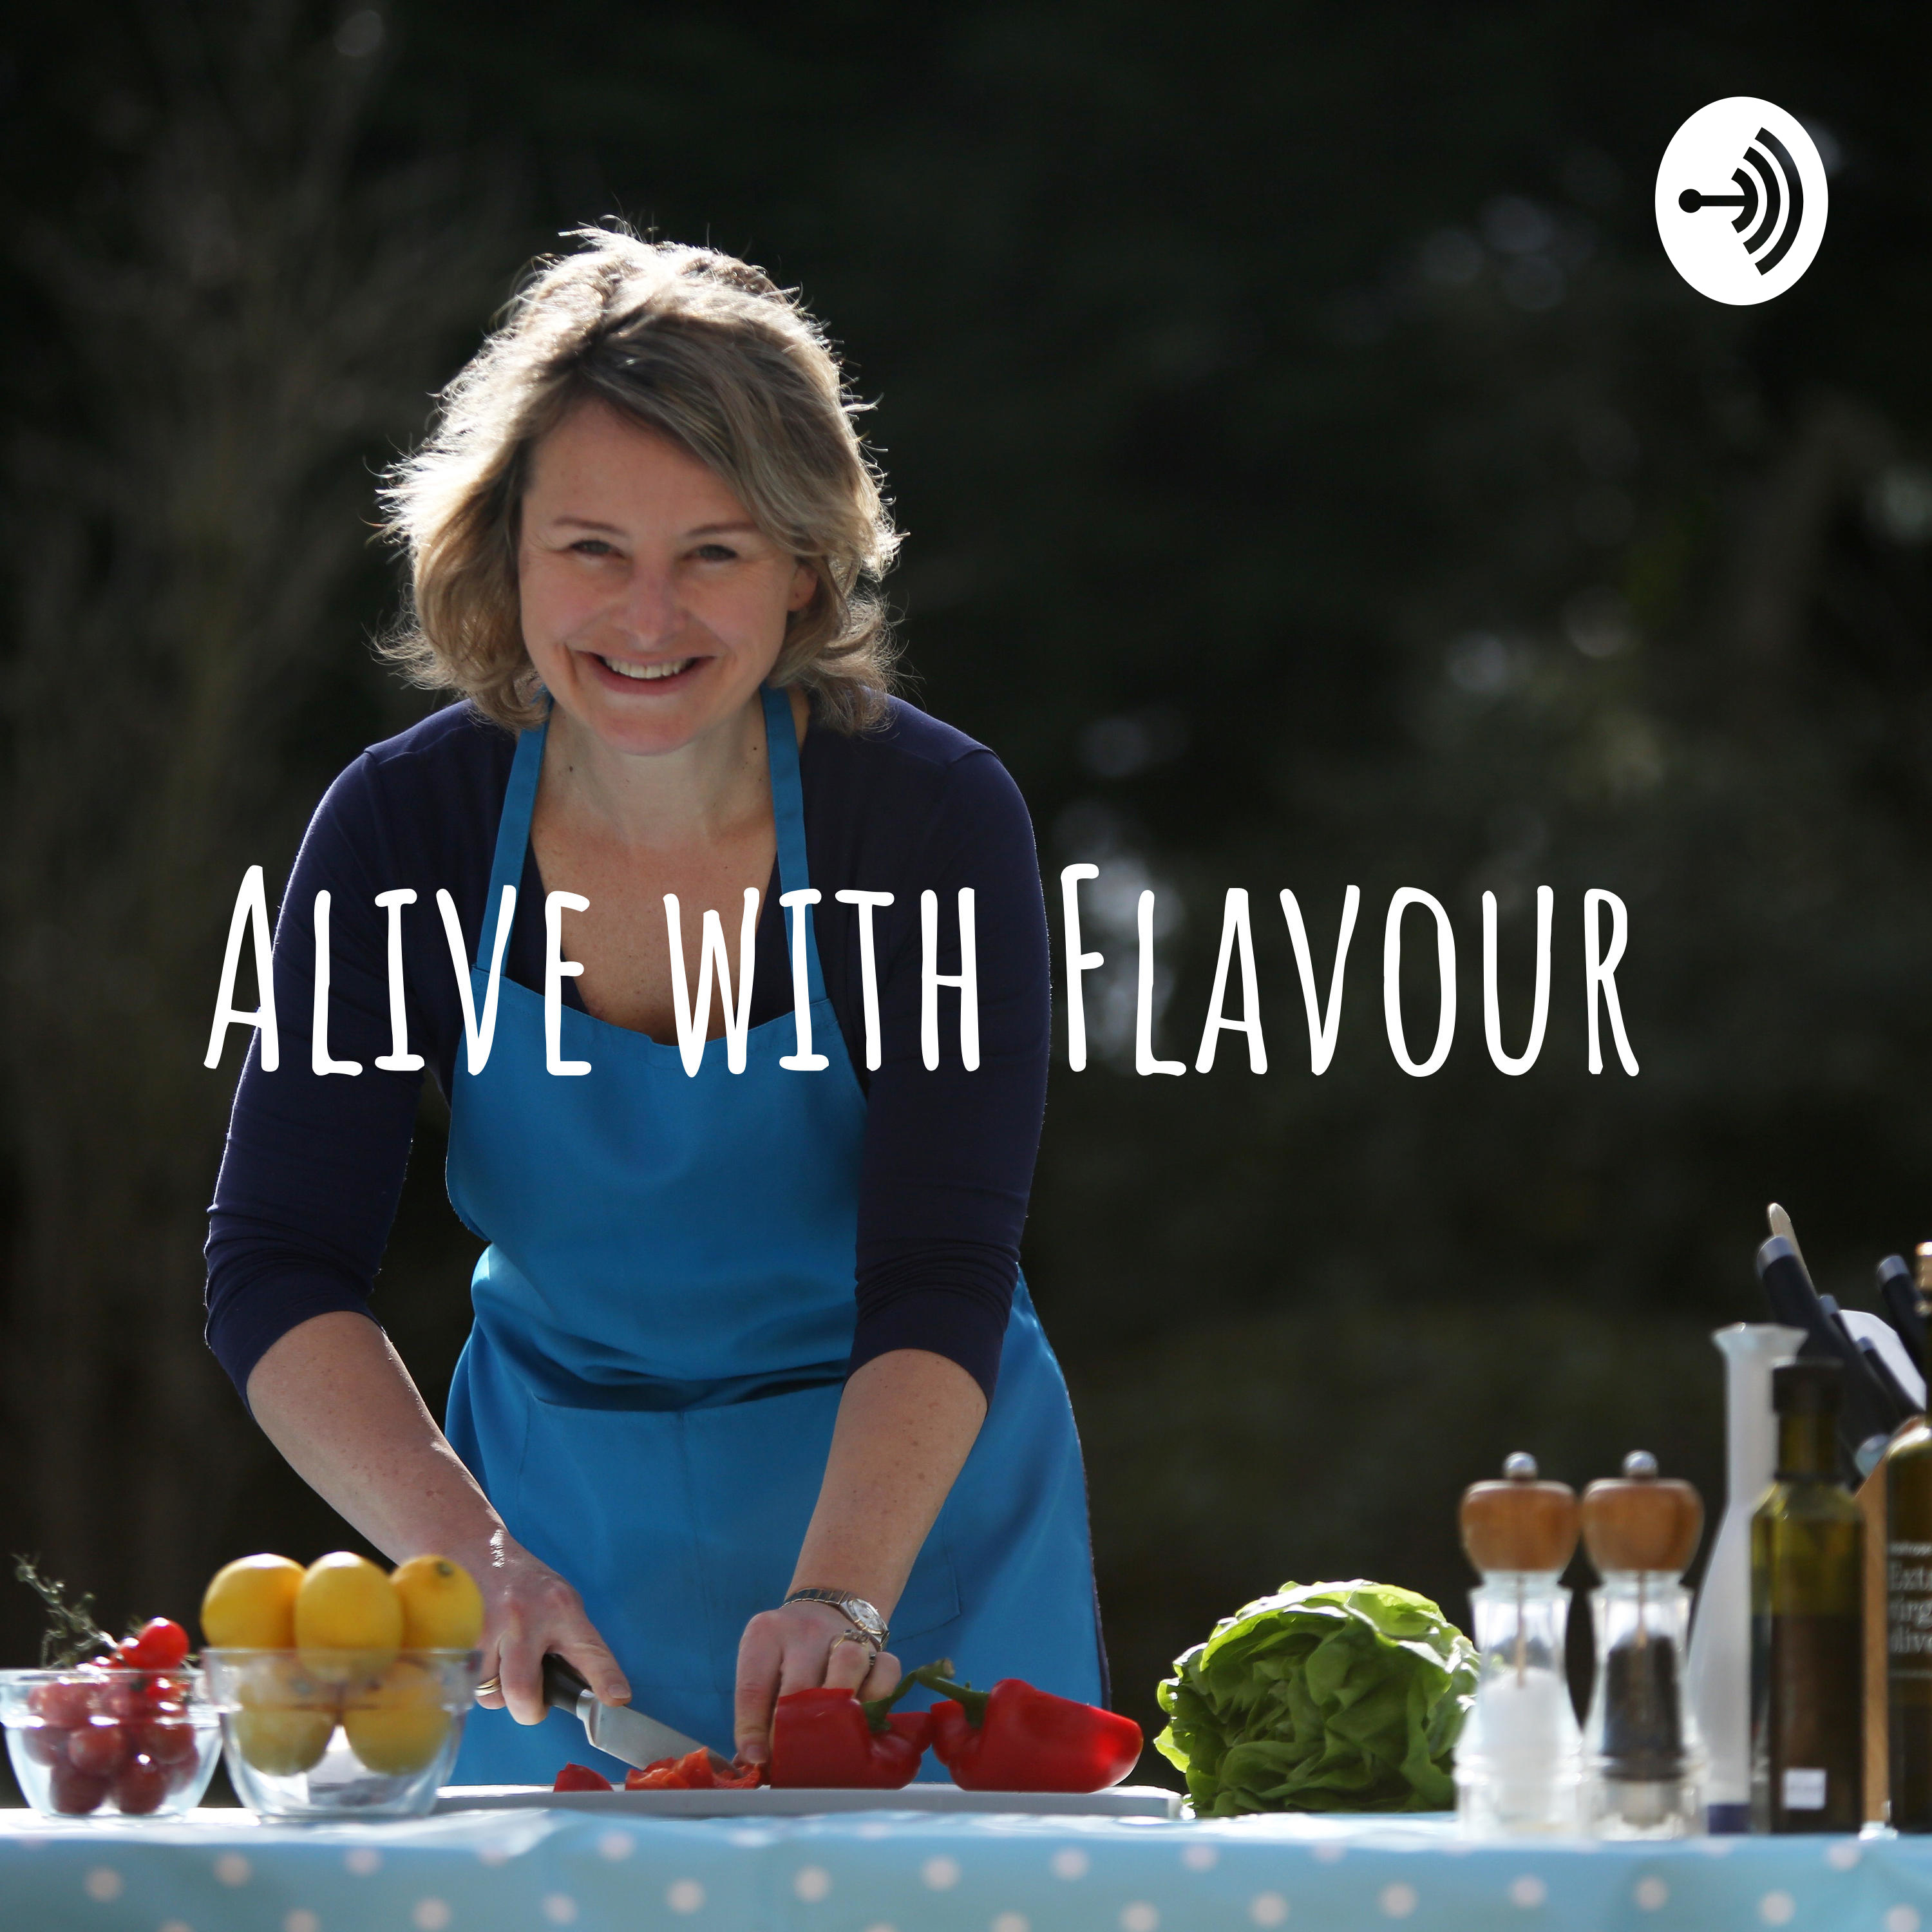 Alive with Flavour